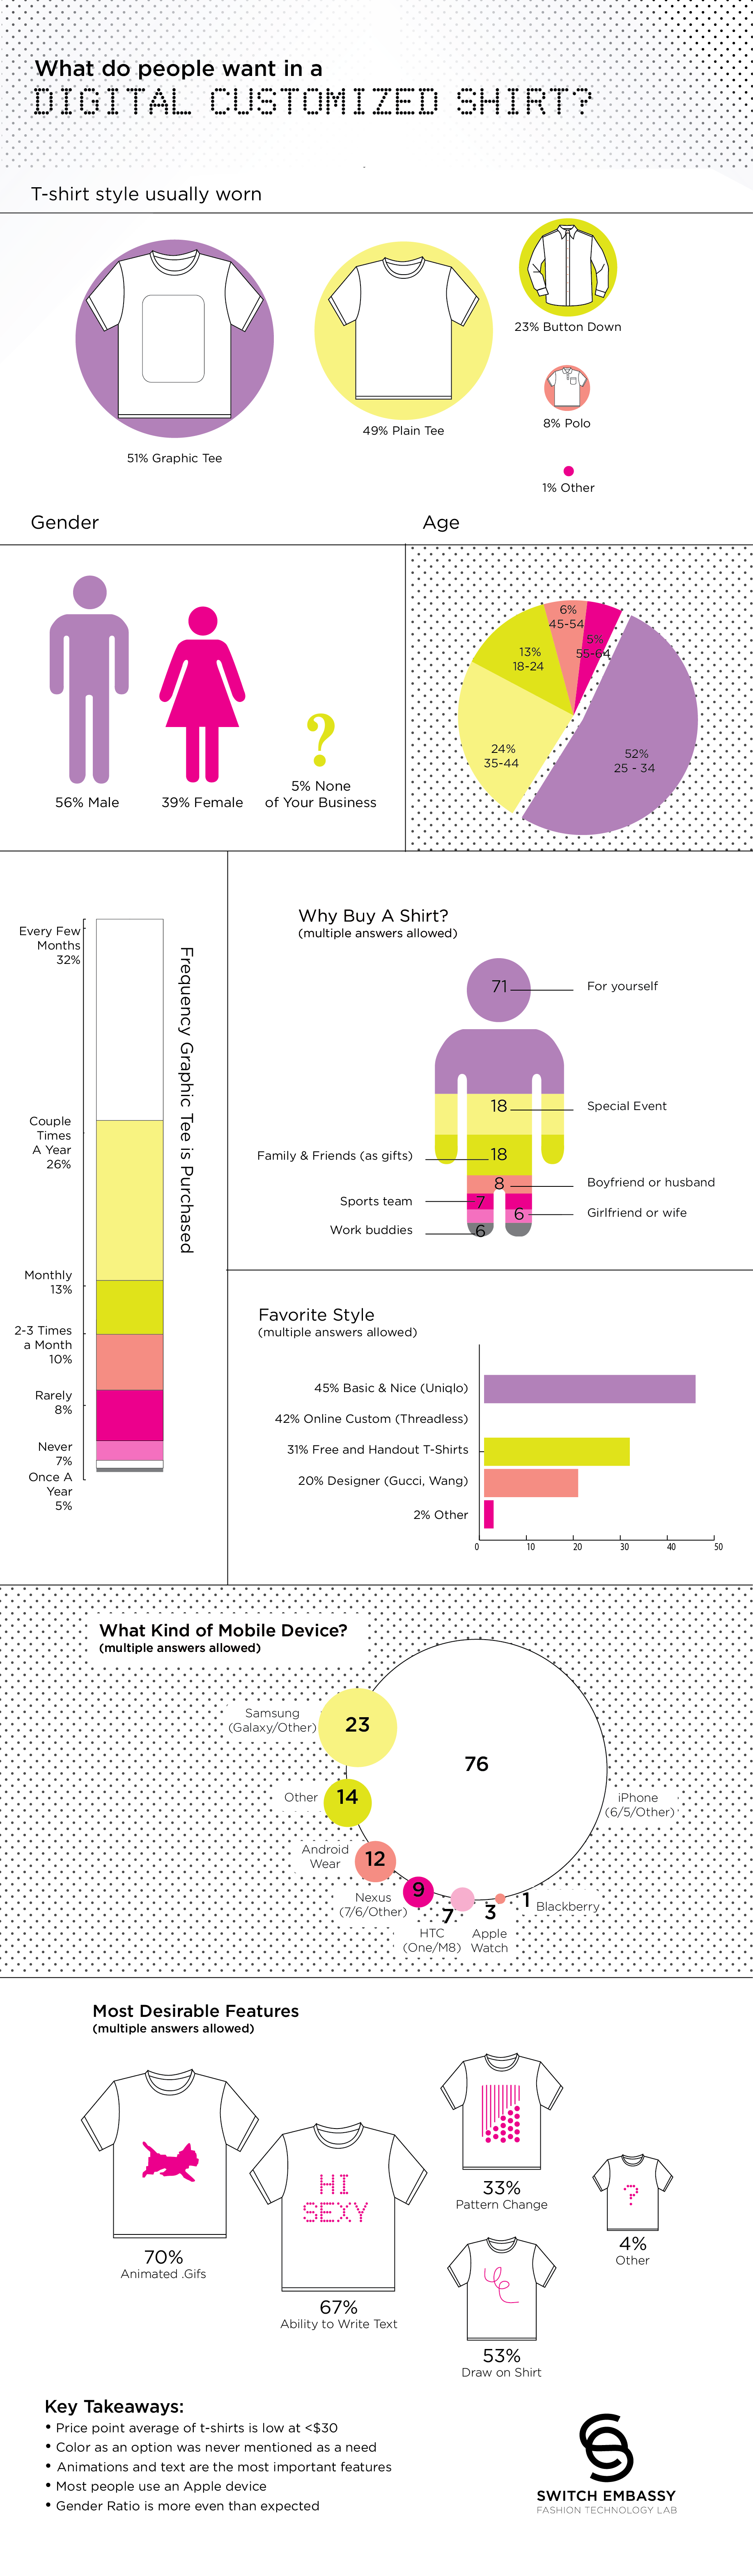 tshirtOS Infographic that shows all the data on what people want in a MVP digitally controlled t-shirt